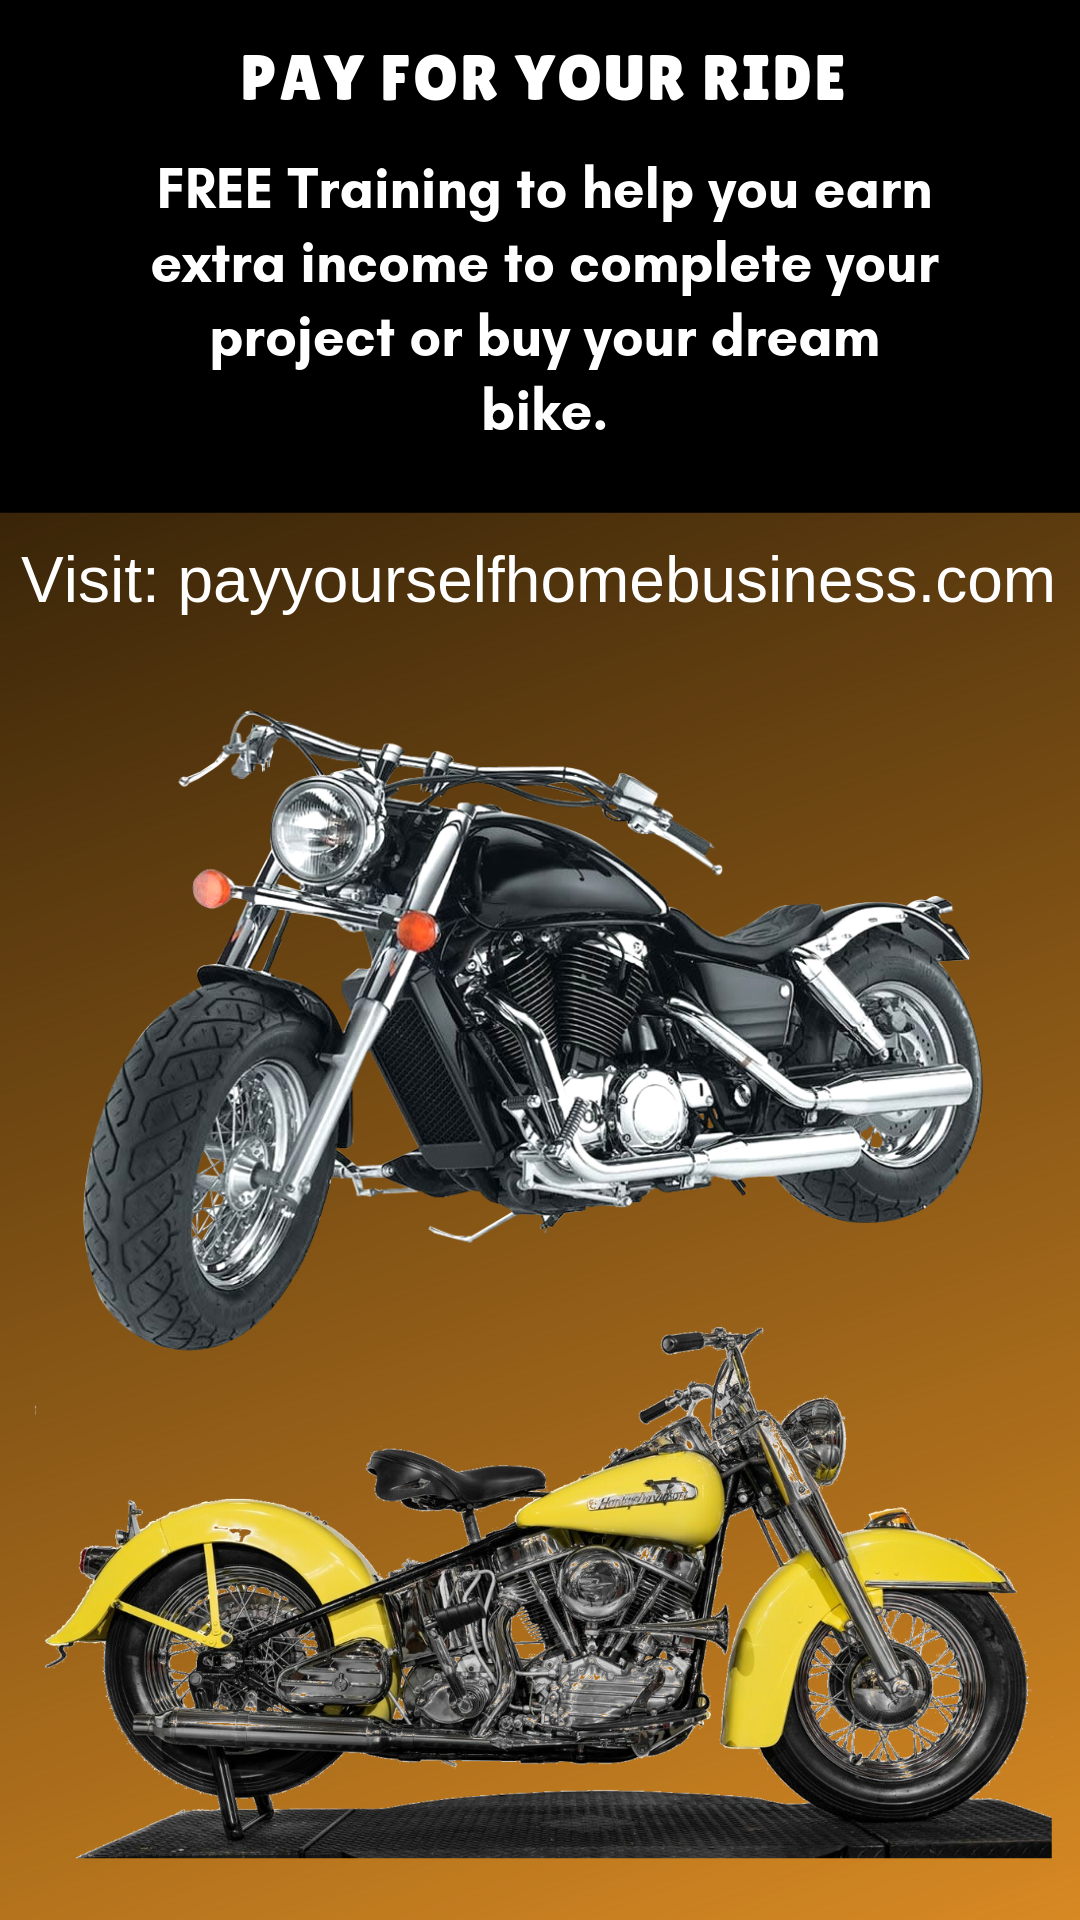 Earn Income to Buy Your Motorcycle